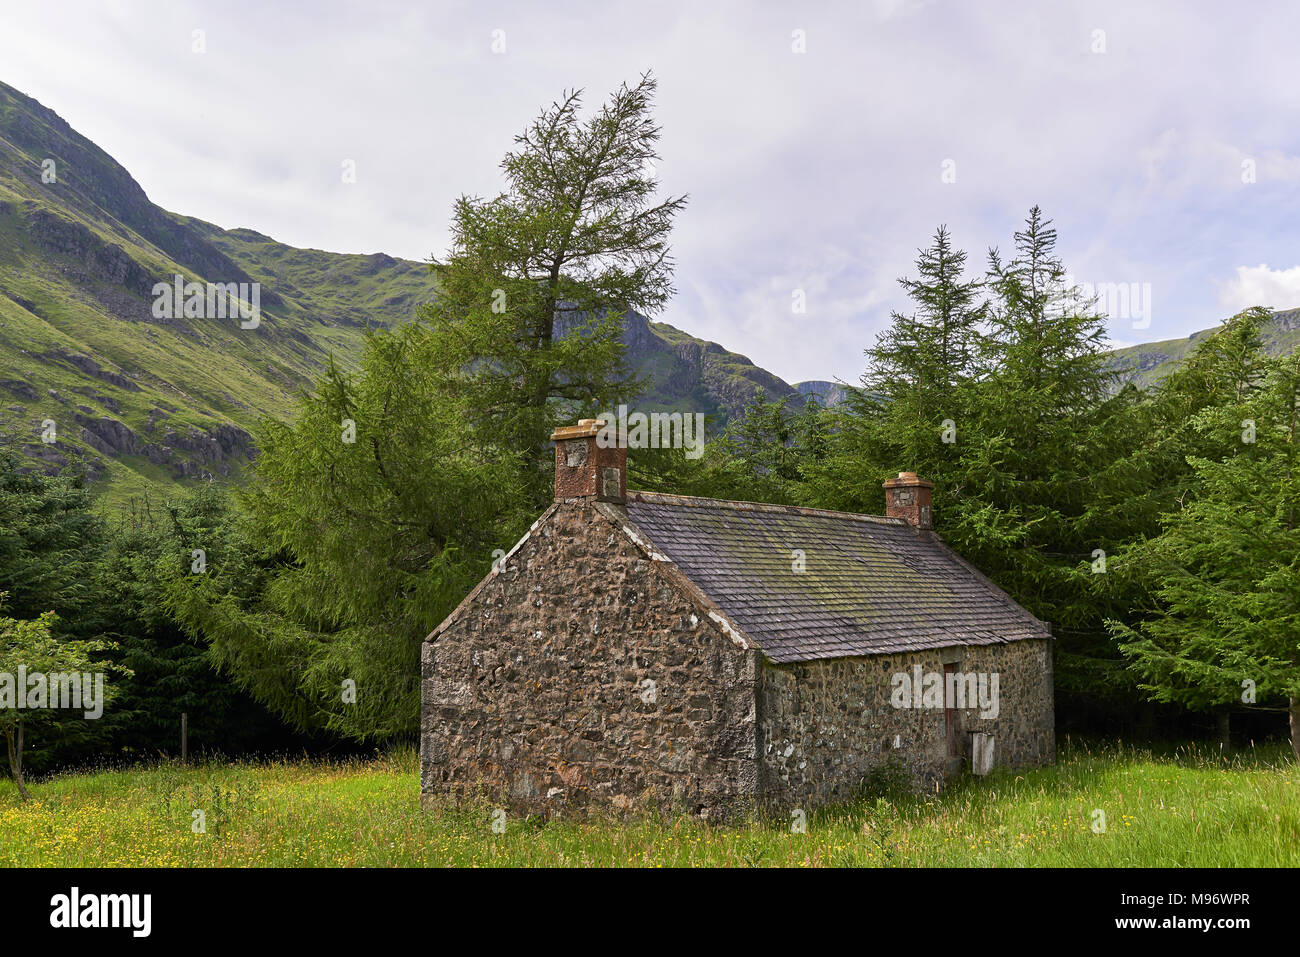 A stone built Mountain Bothy lies situated in a sheltered position within a Mountain Meadow in Glen Doll, Angus, Scotland, part of the Cairngorm Natio - Stock Image